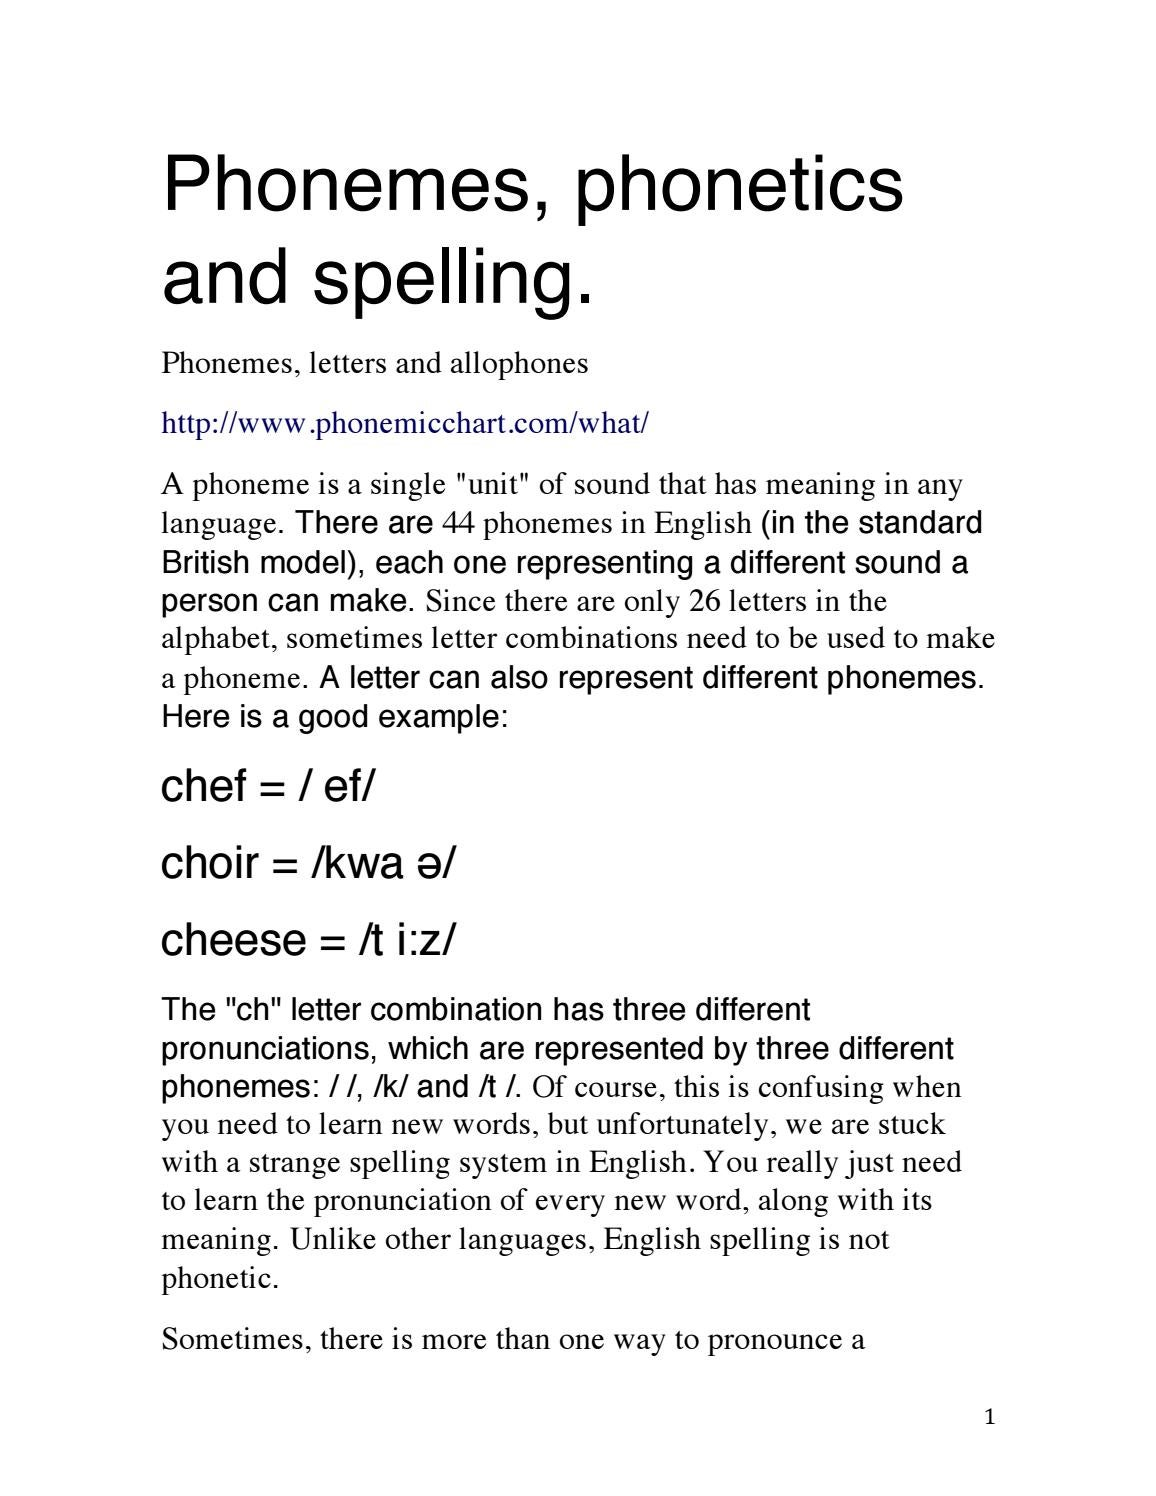 Phonemes in English by isabel   issuu